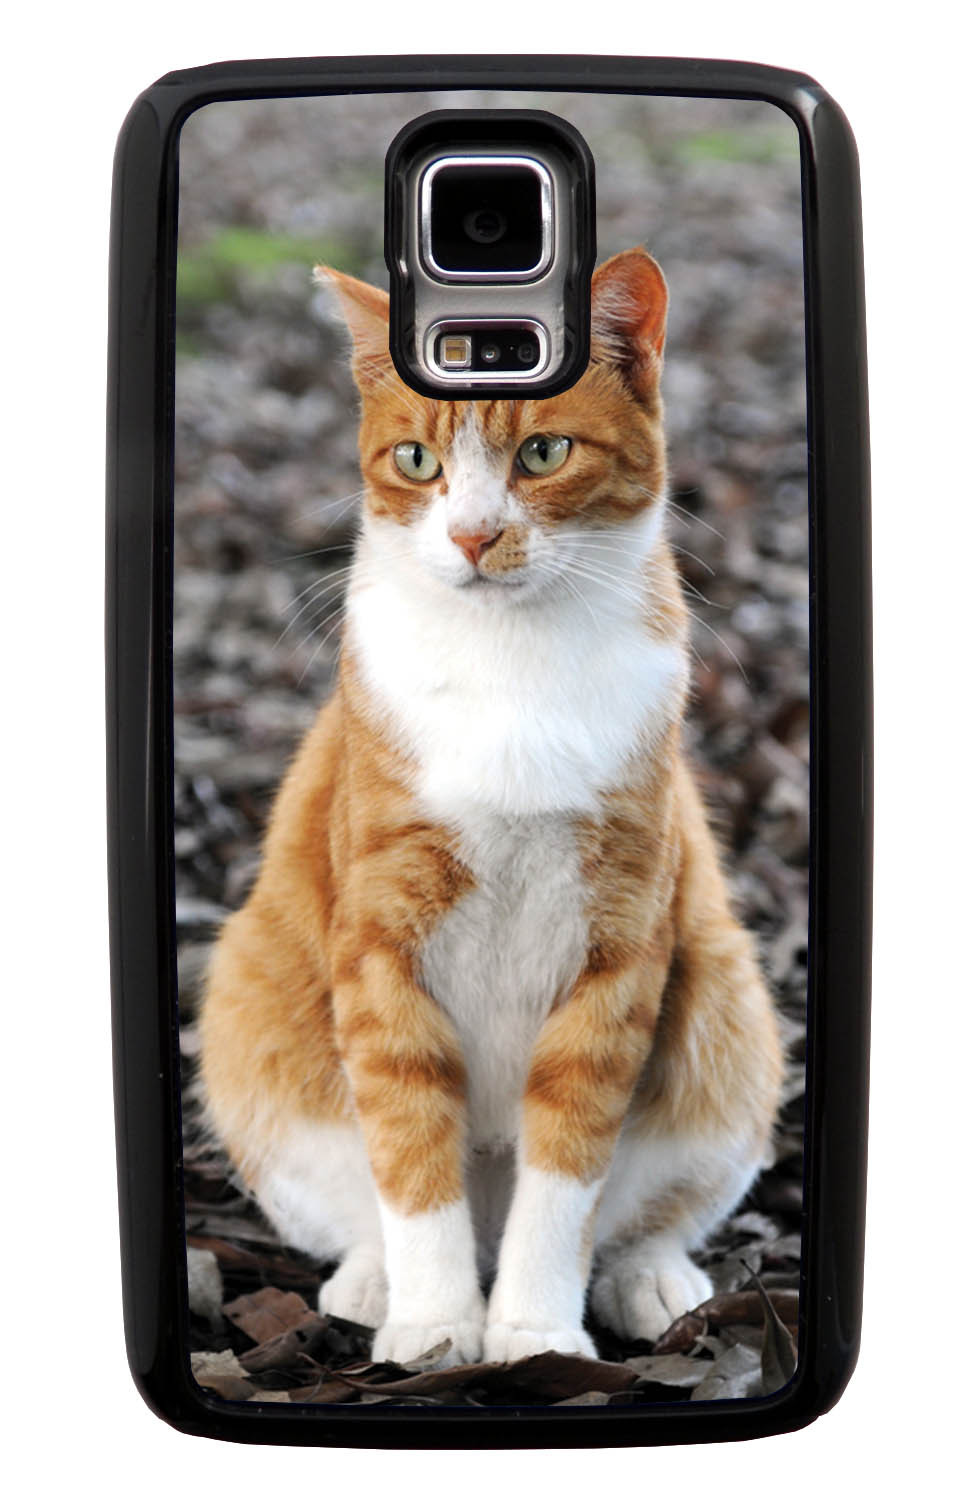 Samsung Galaxy S5 / SV Cat Case - Sitting Cat Photo - Cute Pictures - Black Tough Hybrid Case